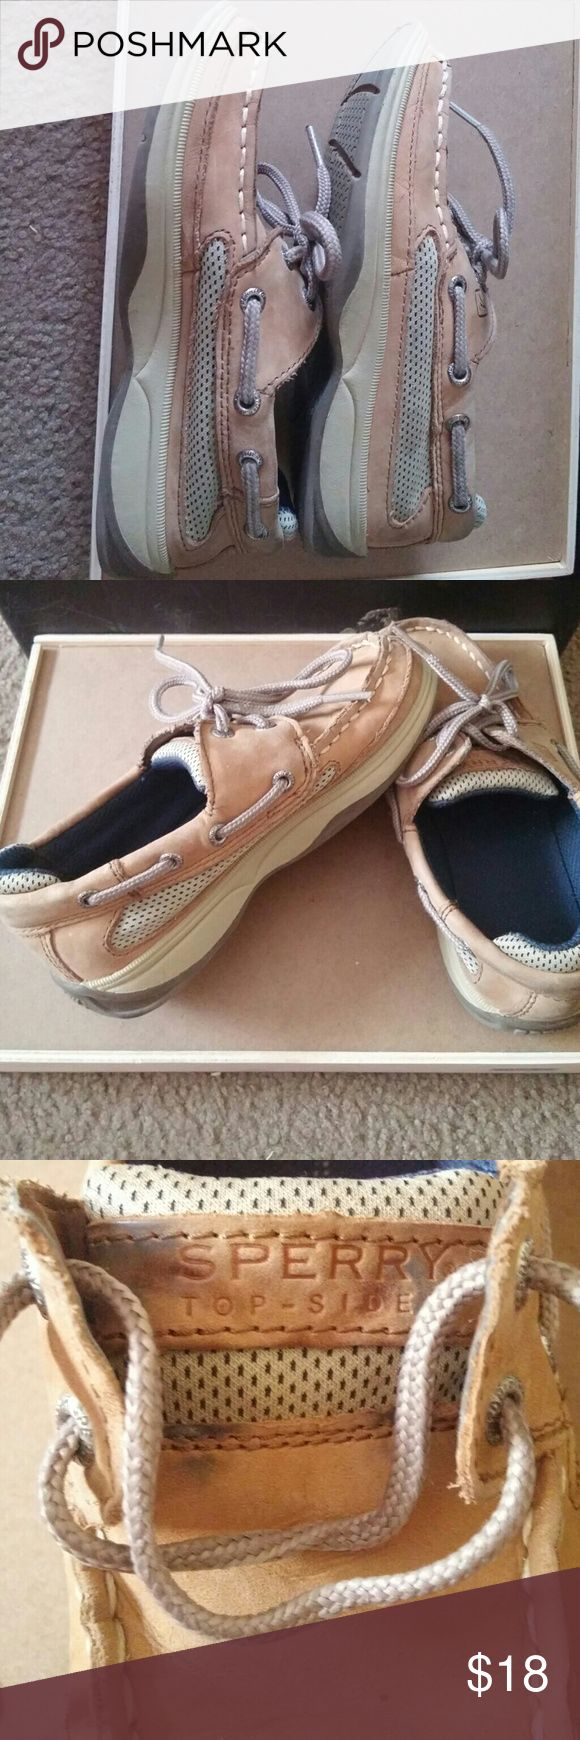 Boys Sperry shoes Sperry shoes size 13m Sperry Top-Sider Shoes